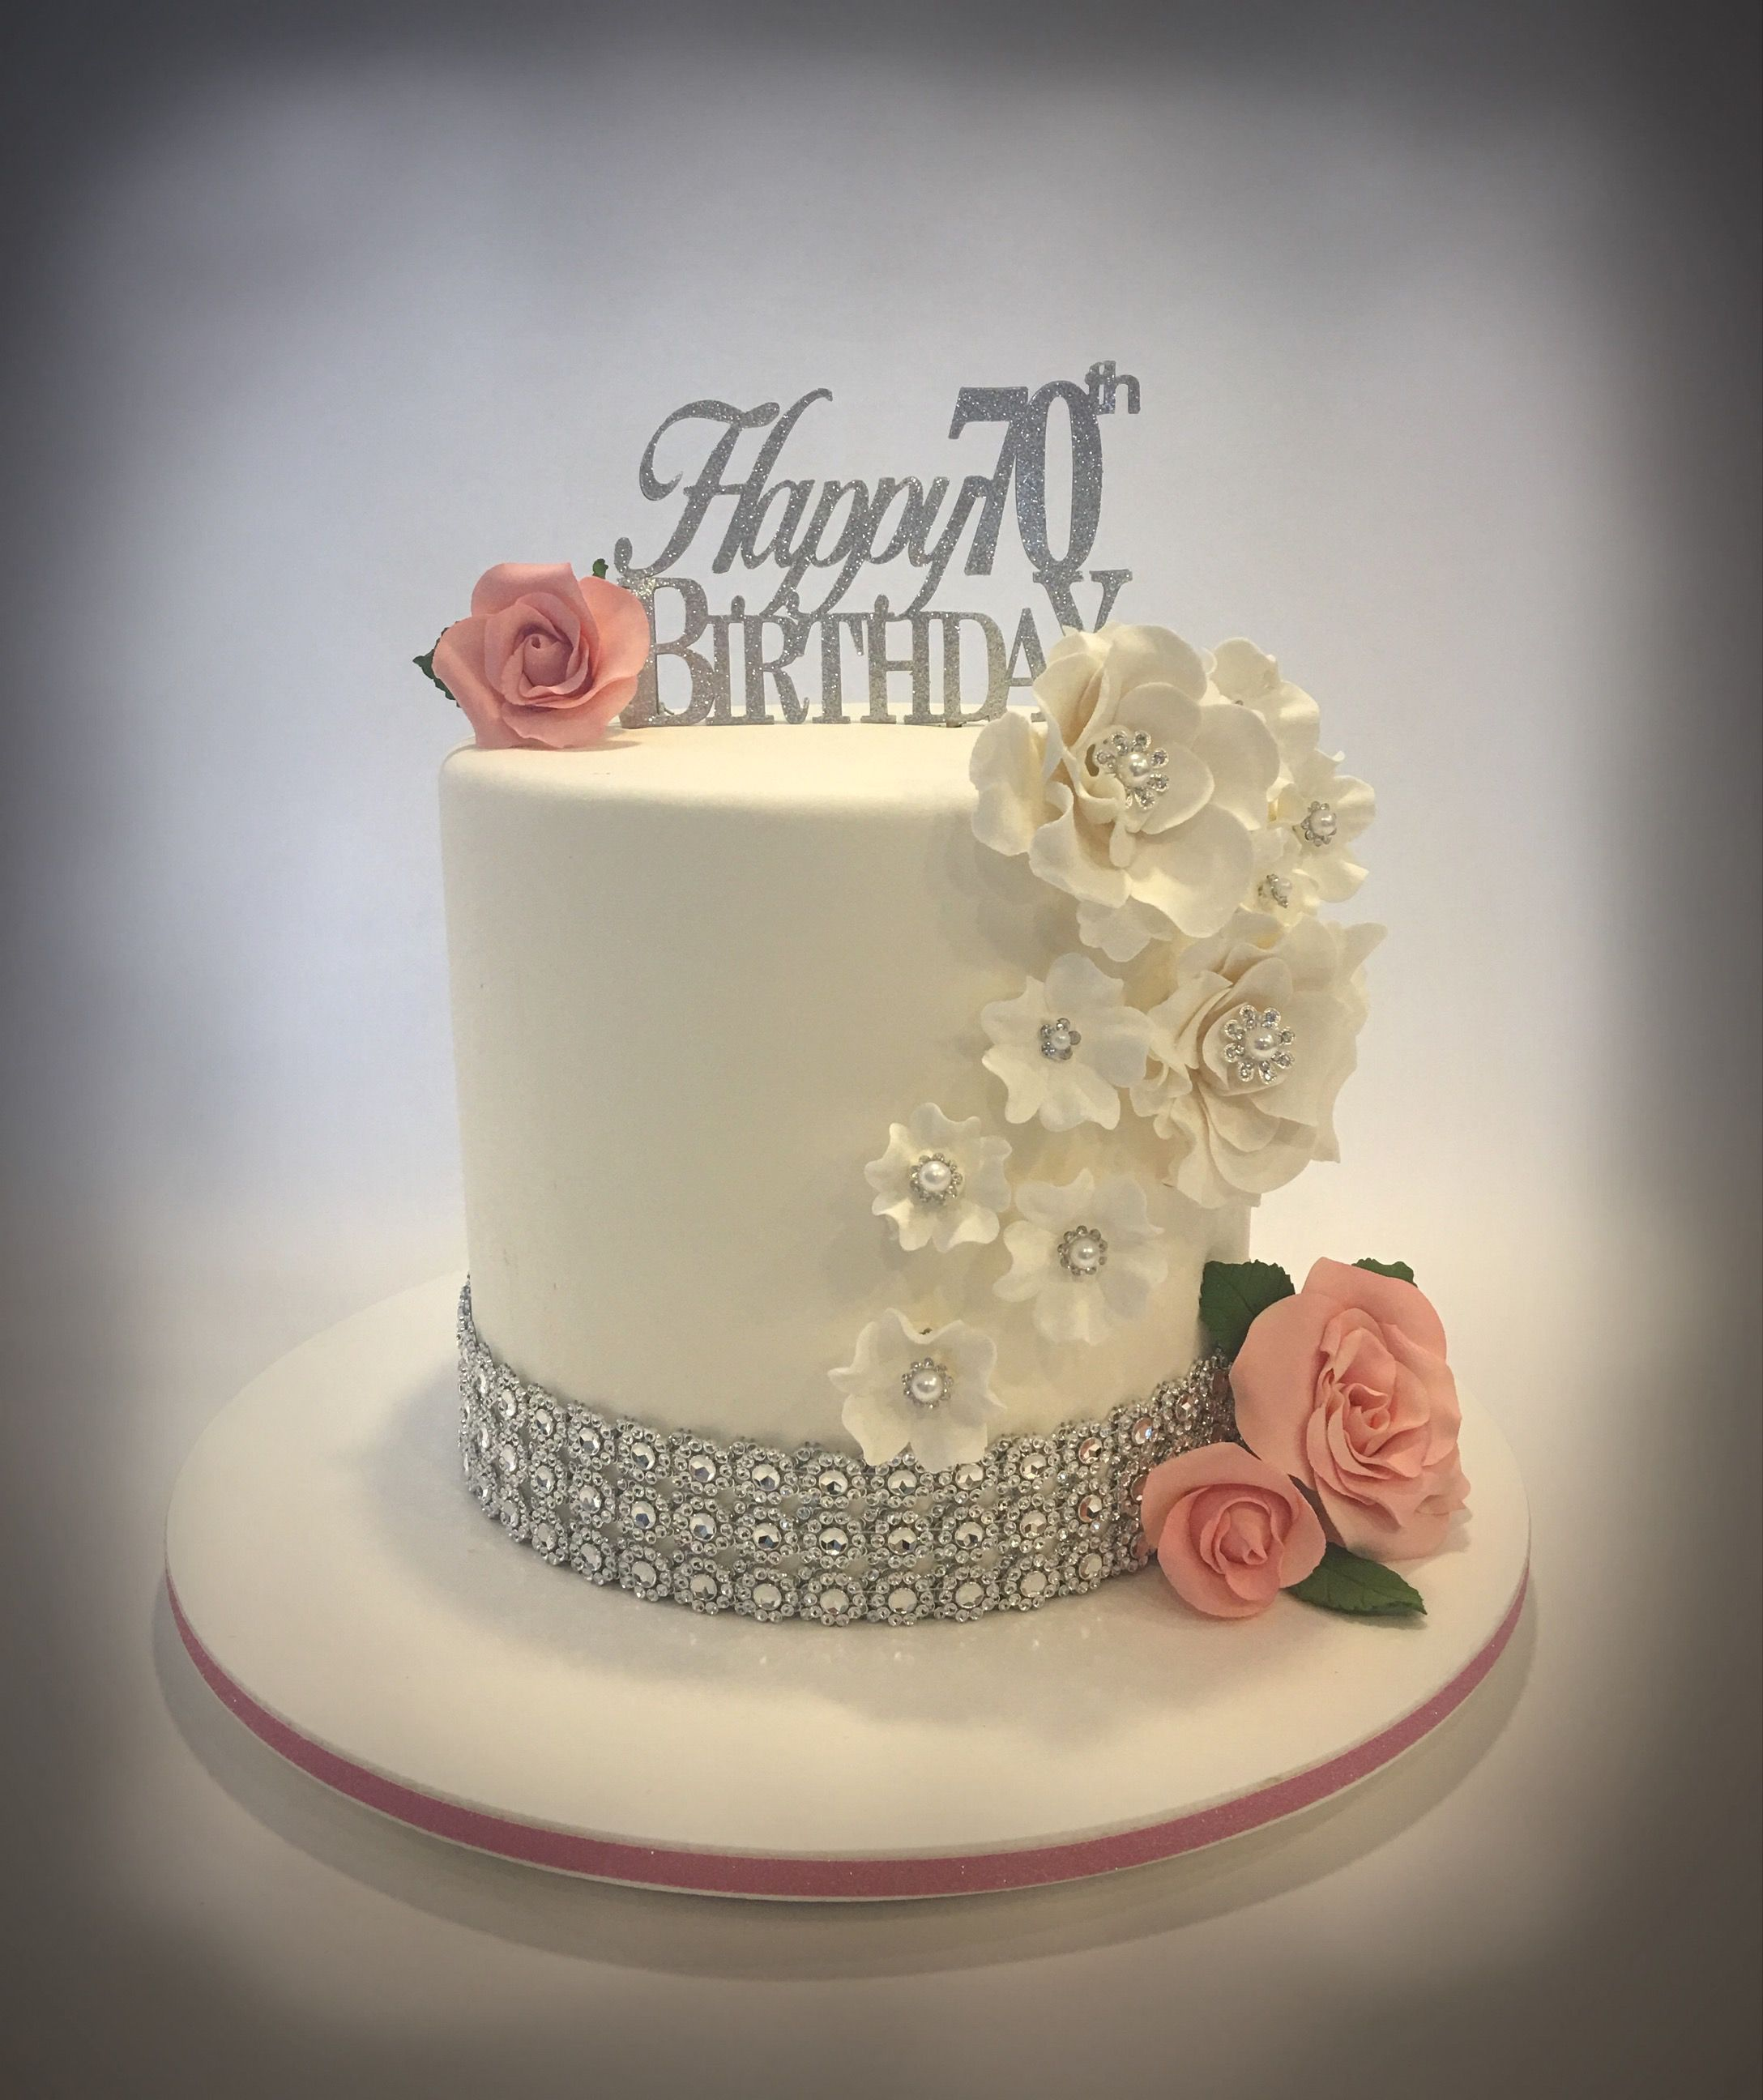 70th birthday cakes for mom - Google Search   70th ...